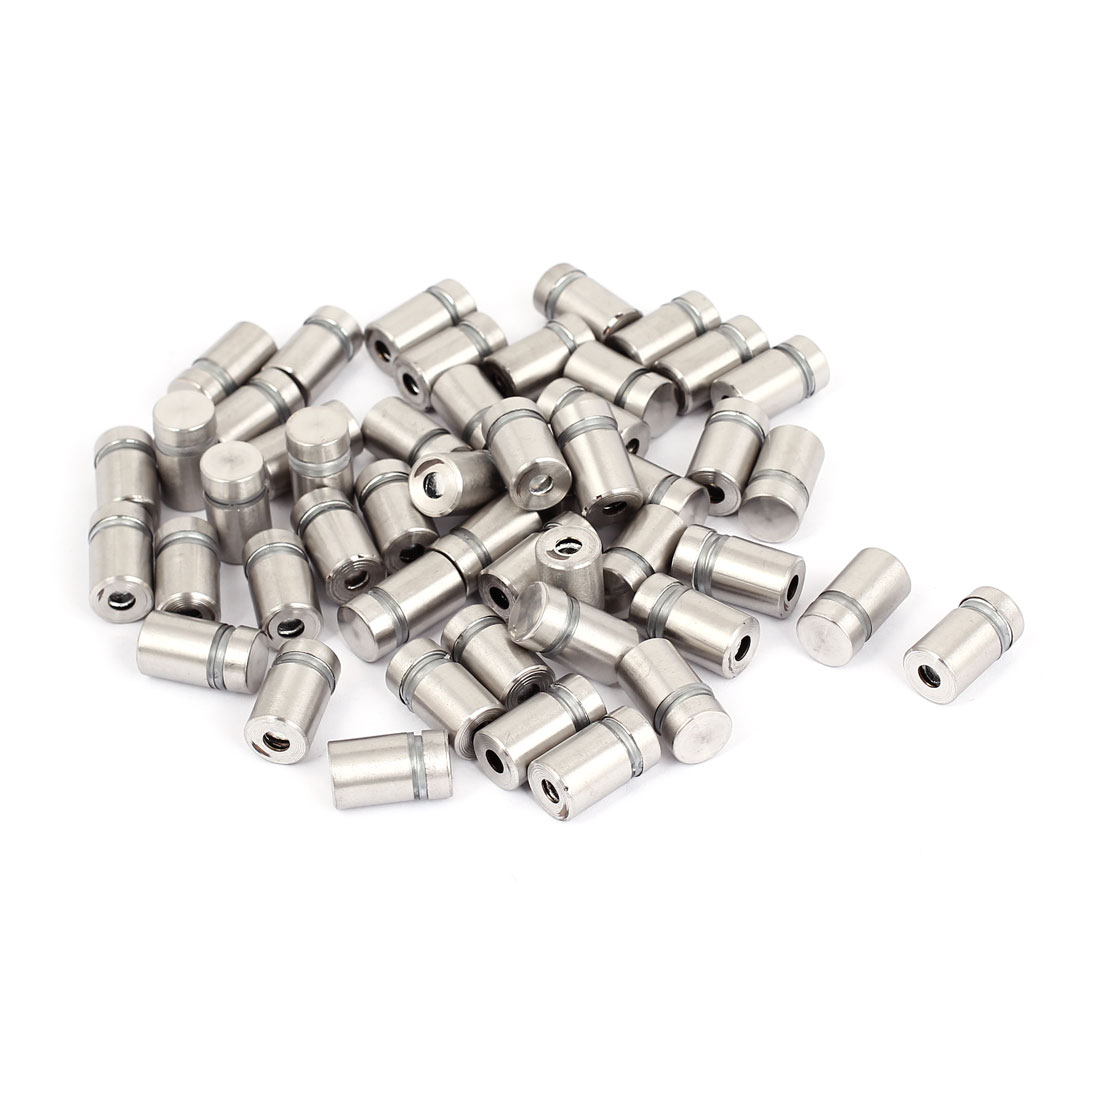 12mmx20mm Stainless Steel Decorative Advertising Screw Nails Silver Tone 50Pcs